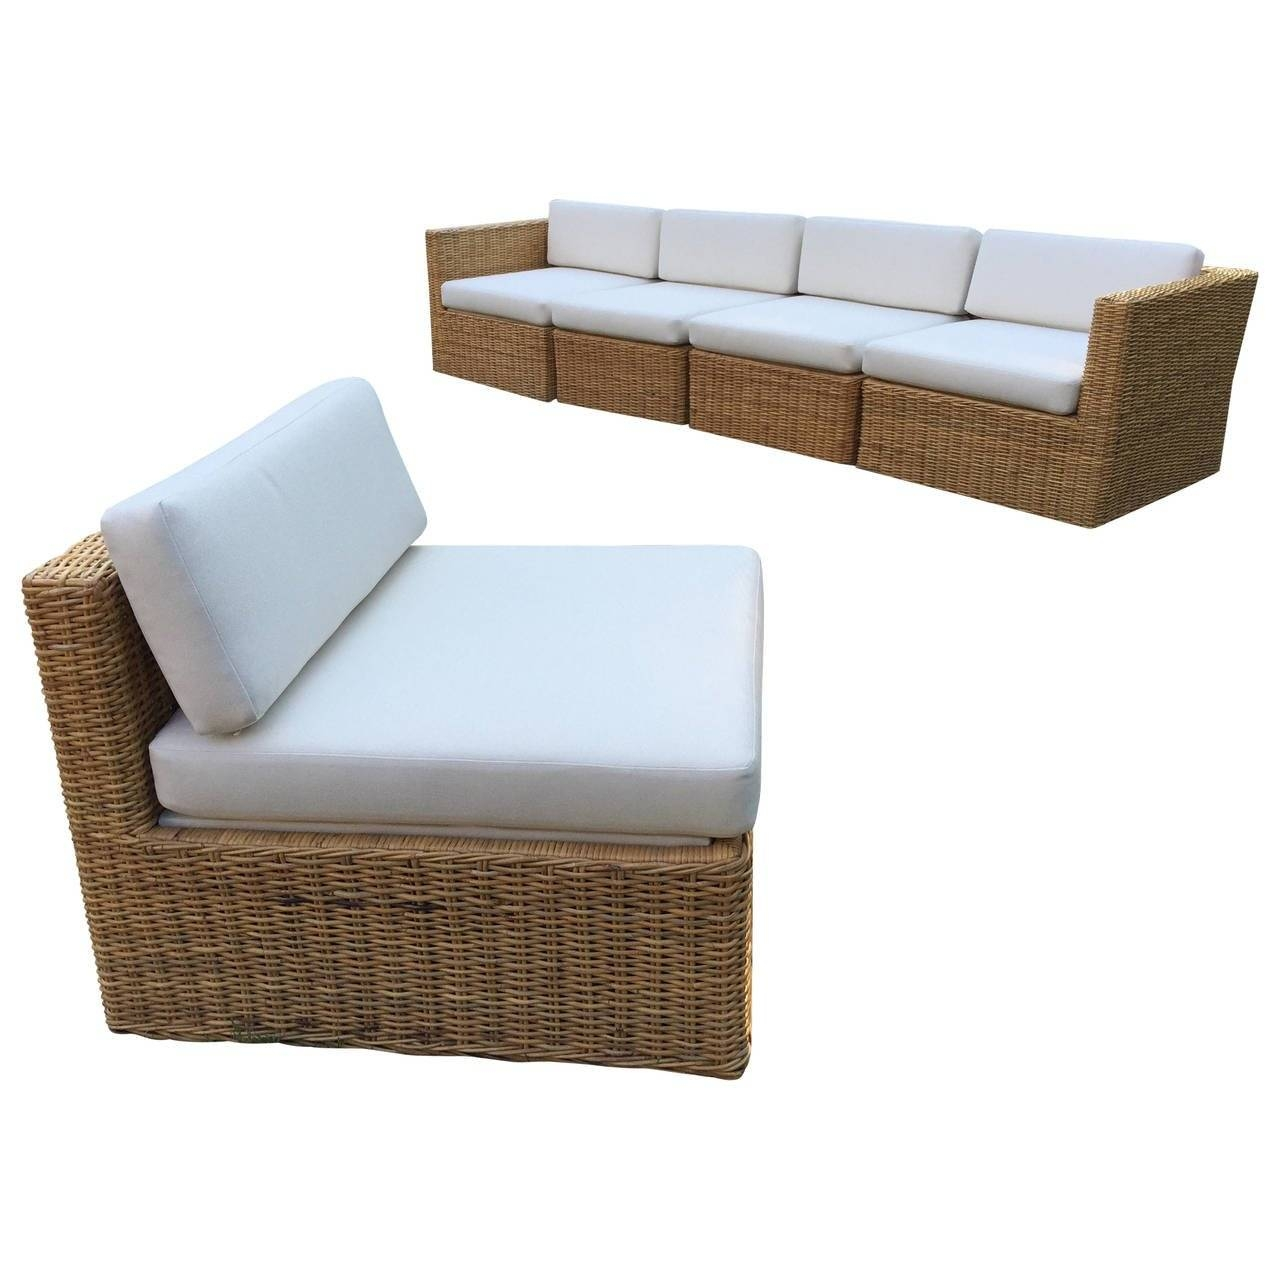 Michael Taylor Wicker/rattan Five-Piece Sectional Sofa And Chairs for Armless Sectional Sofa (Image 16 of 30)